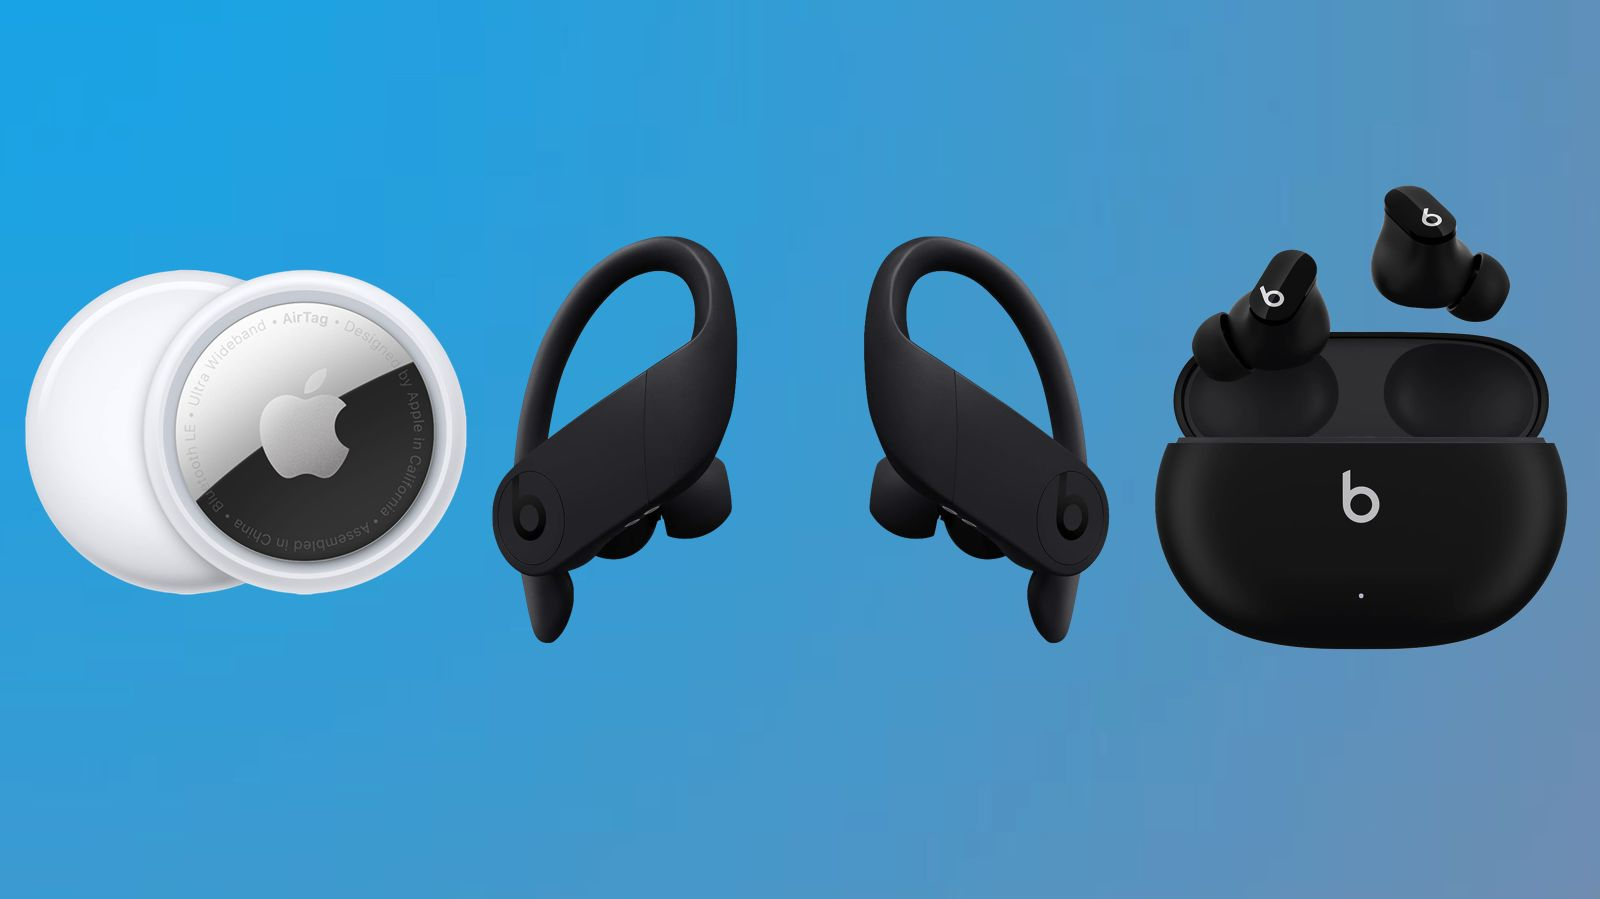 Deals: Woot Shares First Sale on AirTag 4-Pack and Amazon Discounts Multiple Beats Headphones